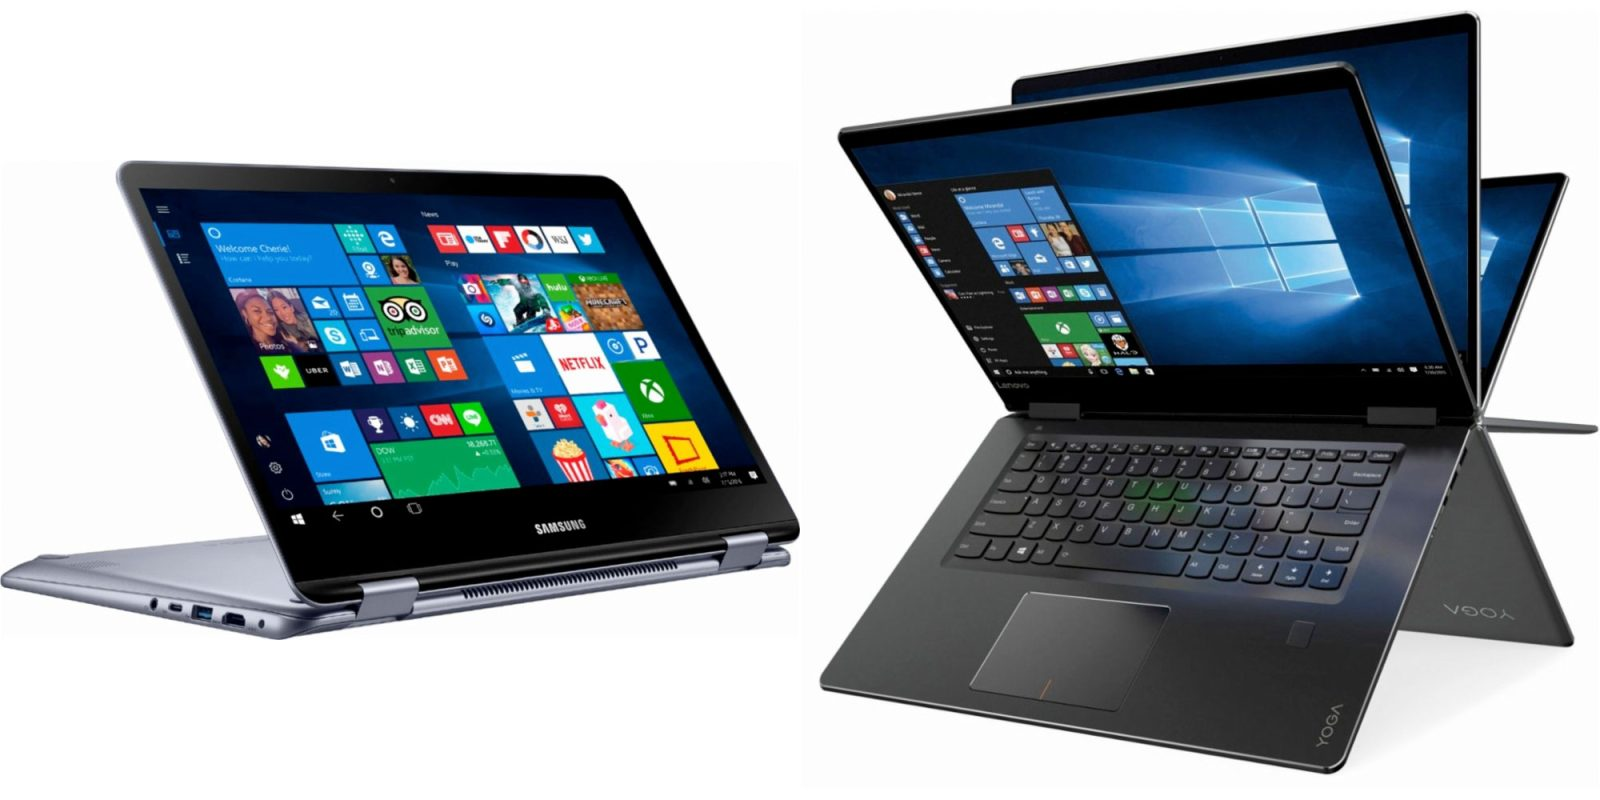 Buy Dell XPS SLV Inch Laptop (Intel Core i5, 8 GB RAM, GB SSD, Silver) Microsoft Signature Image: Everything Else - cursoformuladosmusculos.tk FREE DELIVERY possible on eligible purchases.